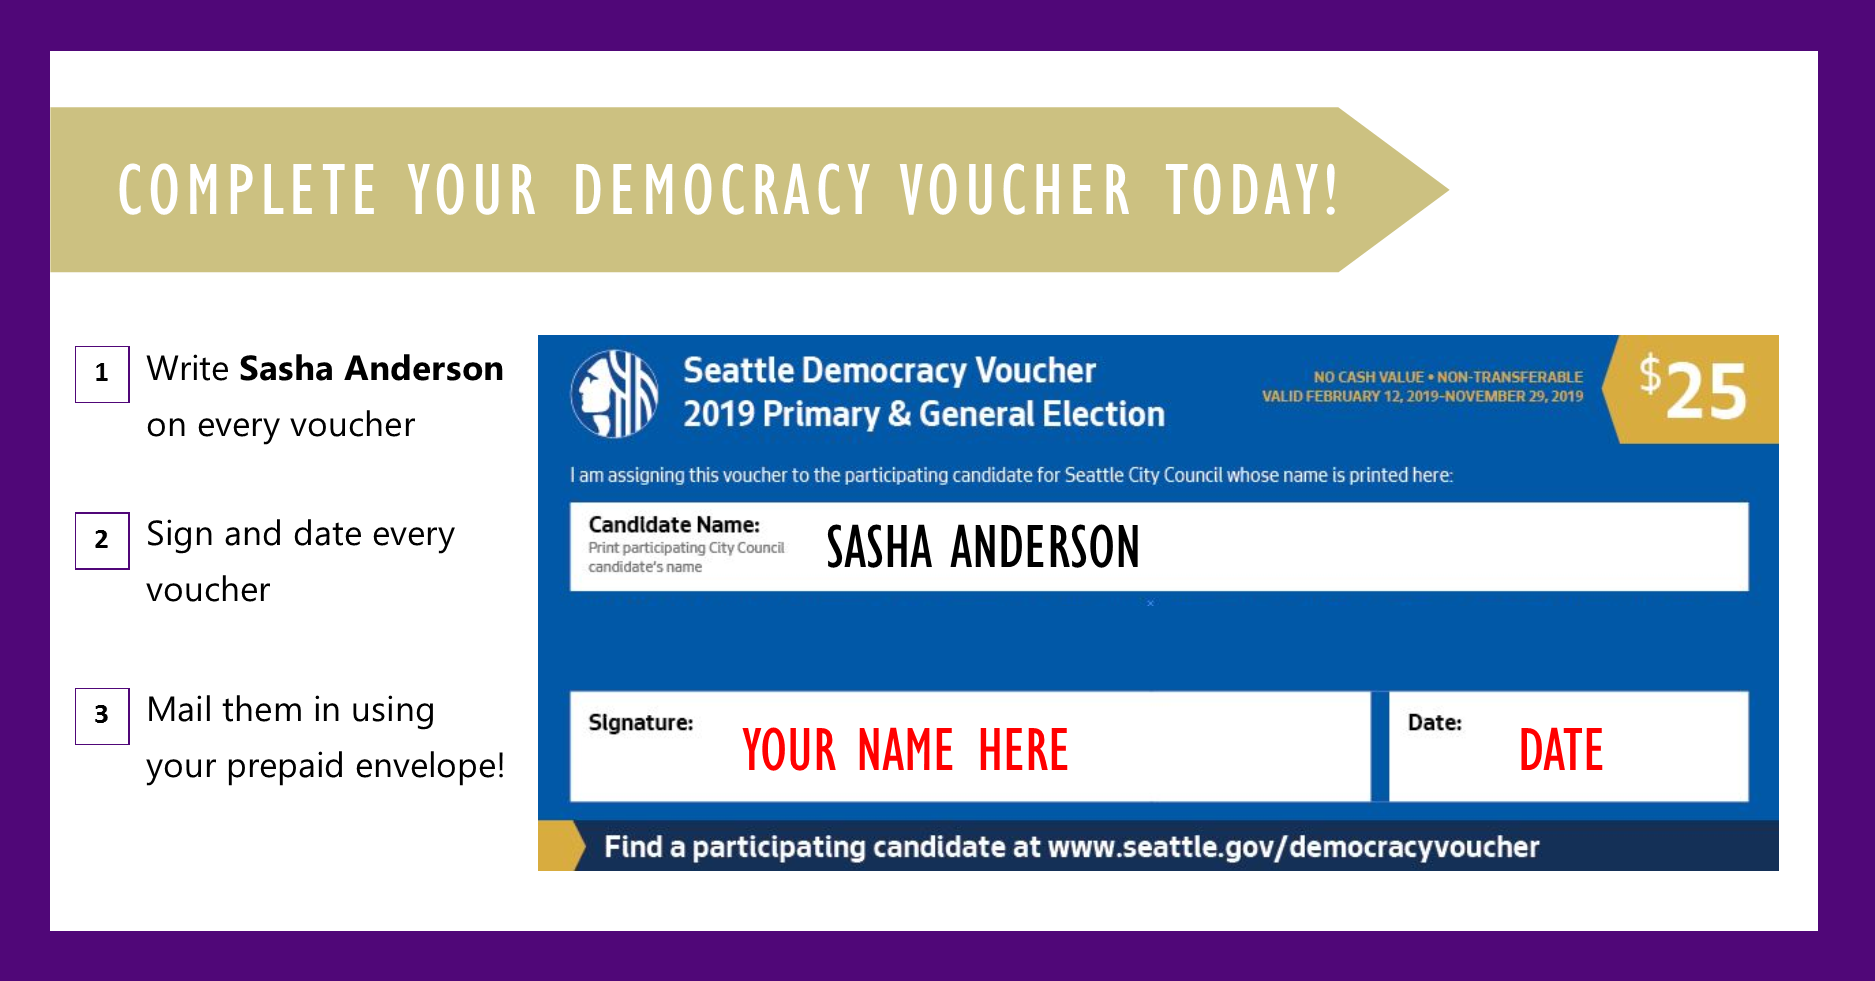 Donate your Vouchers TODAY! - Just follow the directions above and mail 'em